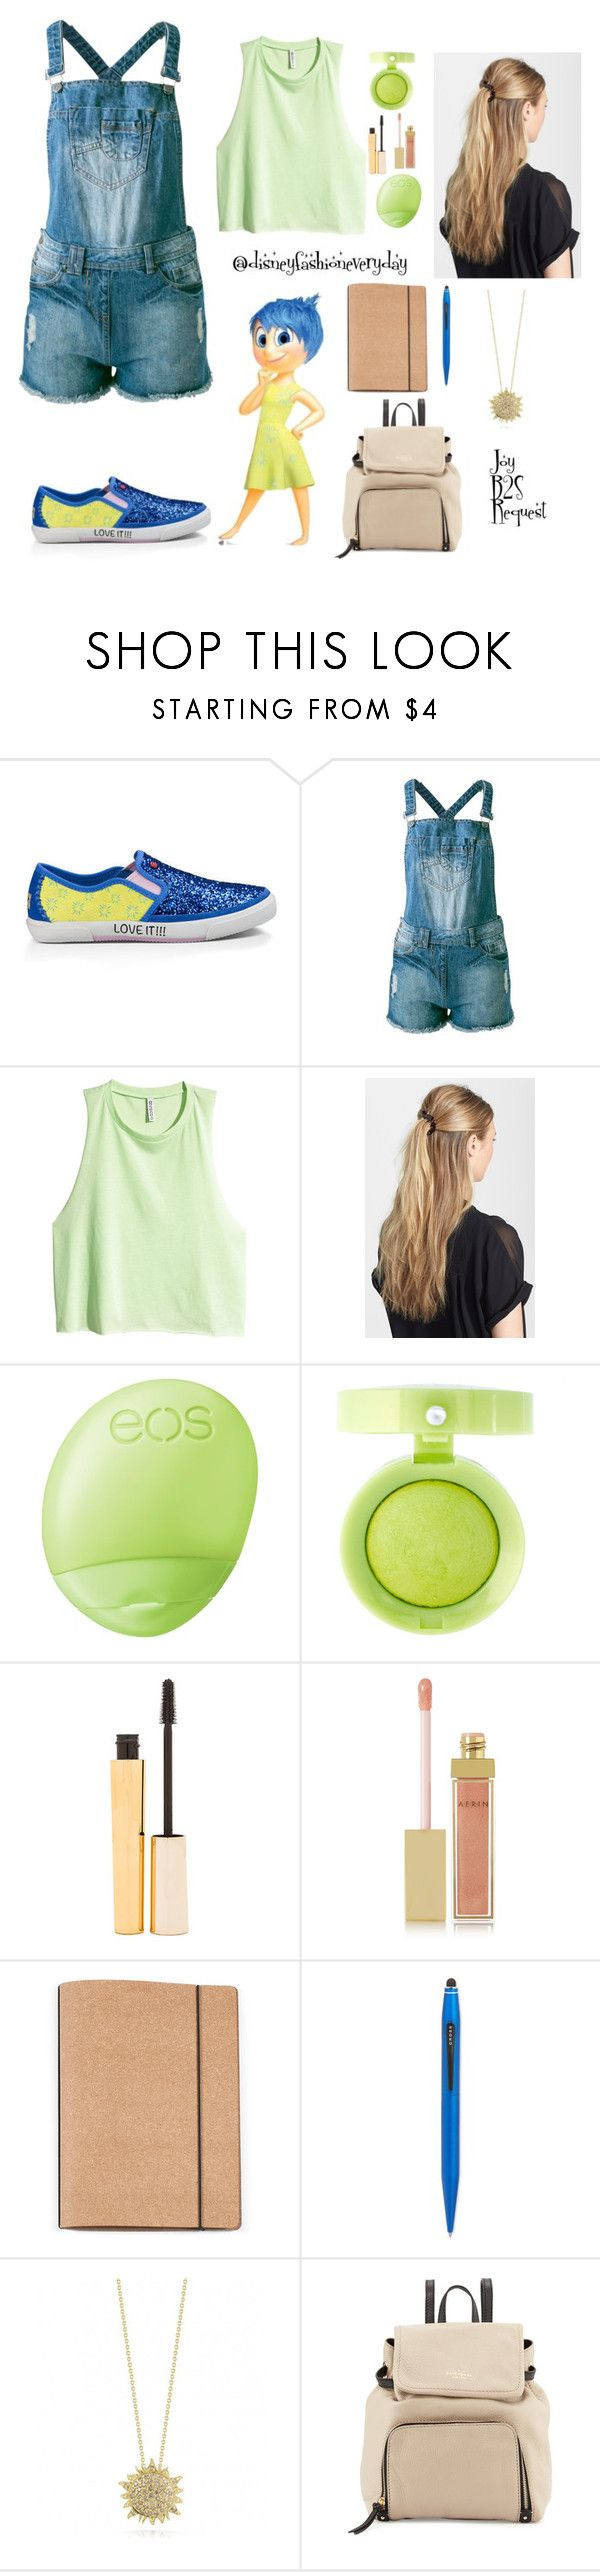 """""""Joy B2S"""" by disneyfashioneveryday ❤ liked on Polyvore featuring Disney, UGG Australia, Sally&Circle, H&M, France Luxe, Eos, Bourjois, Stila, AERIN and Cross"""